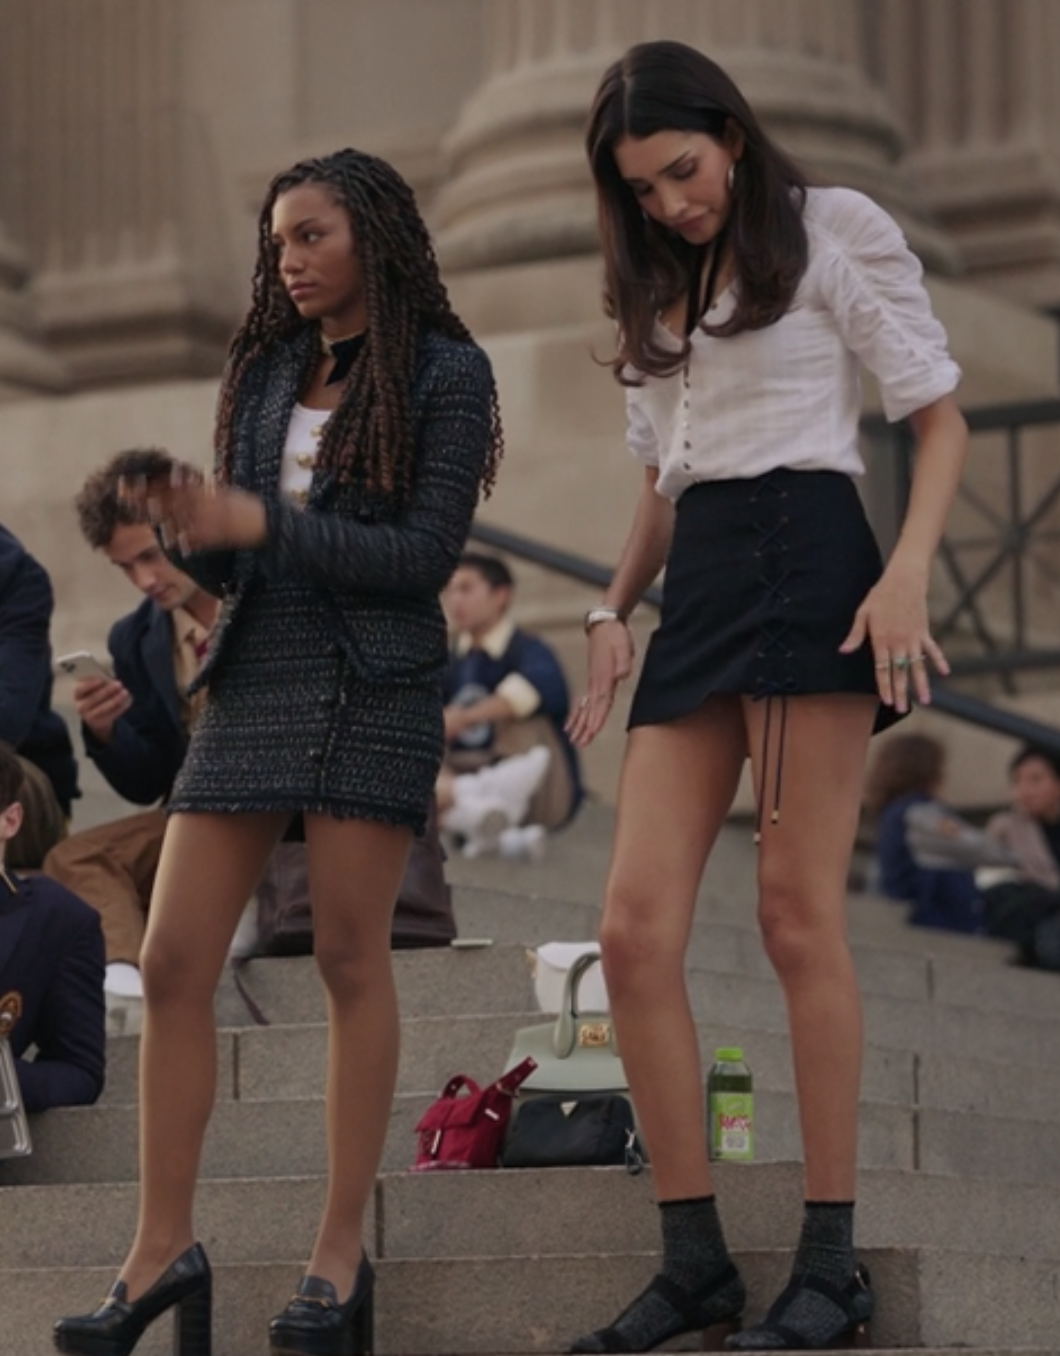 Monet wears a tweed blazer and skirt set and Luna wears a mini skirt with a button up top tucked into it